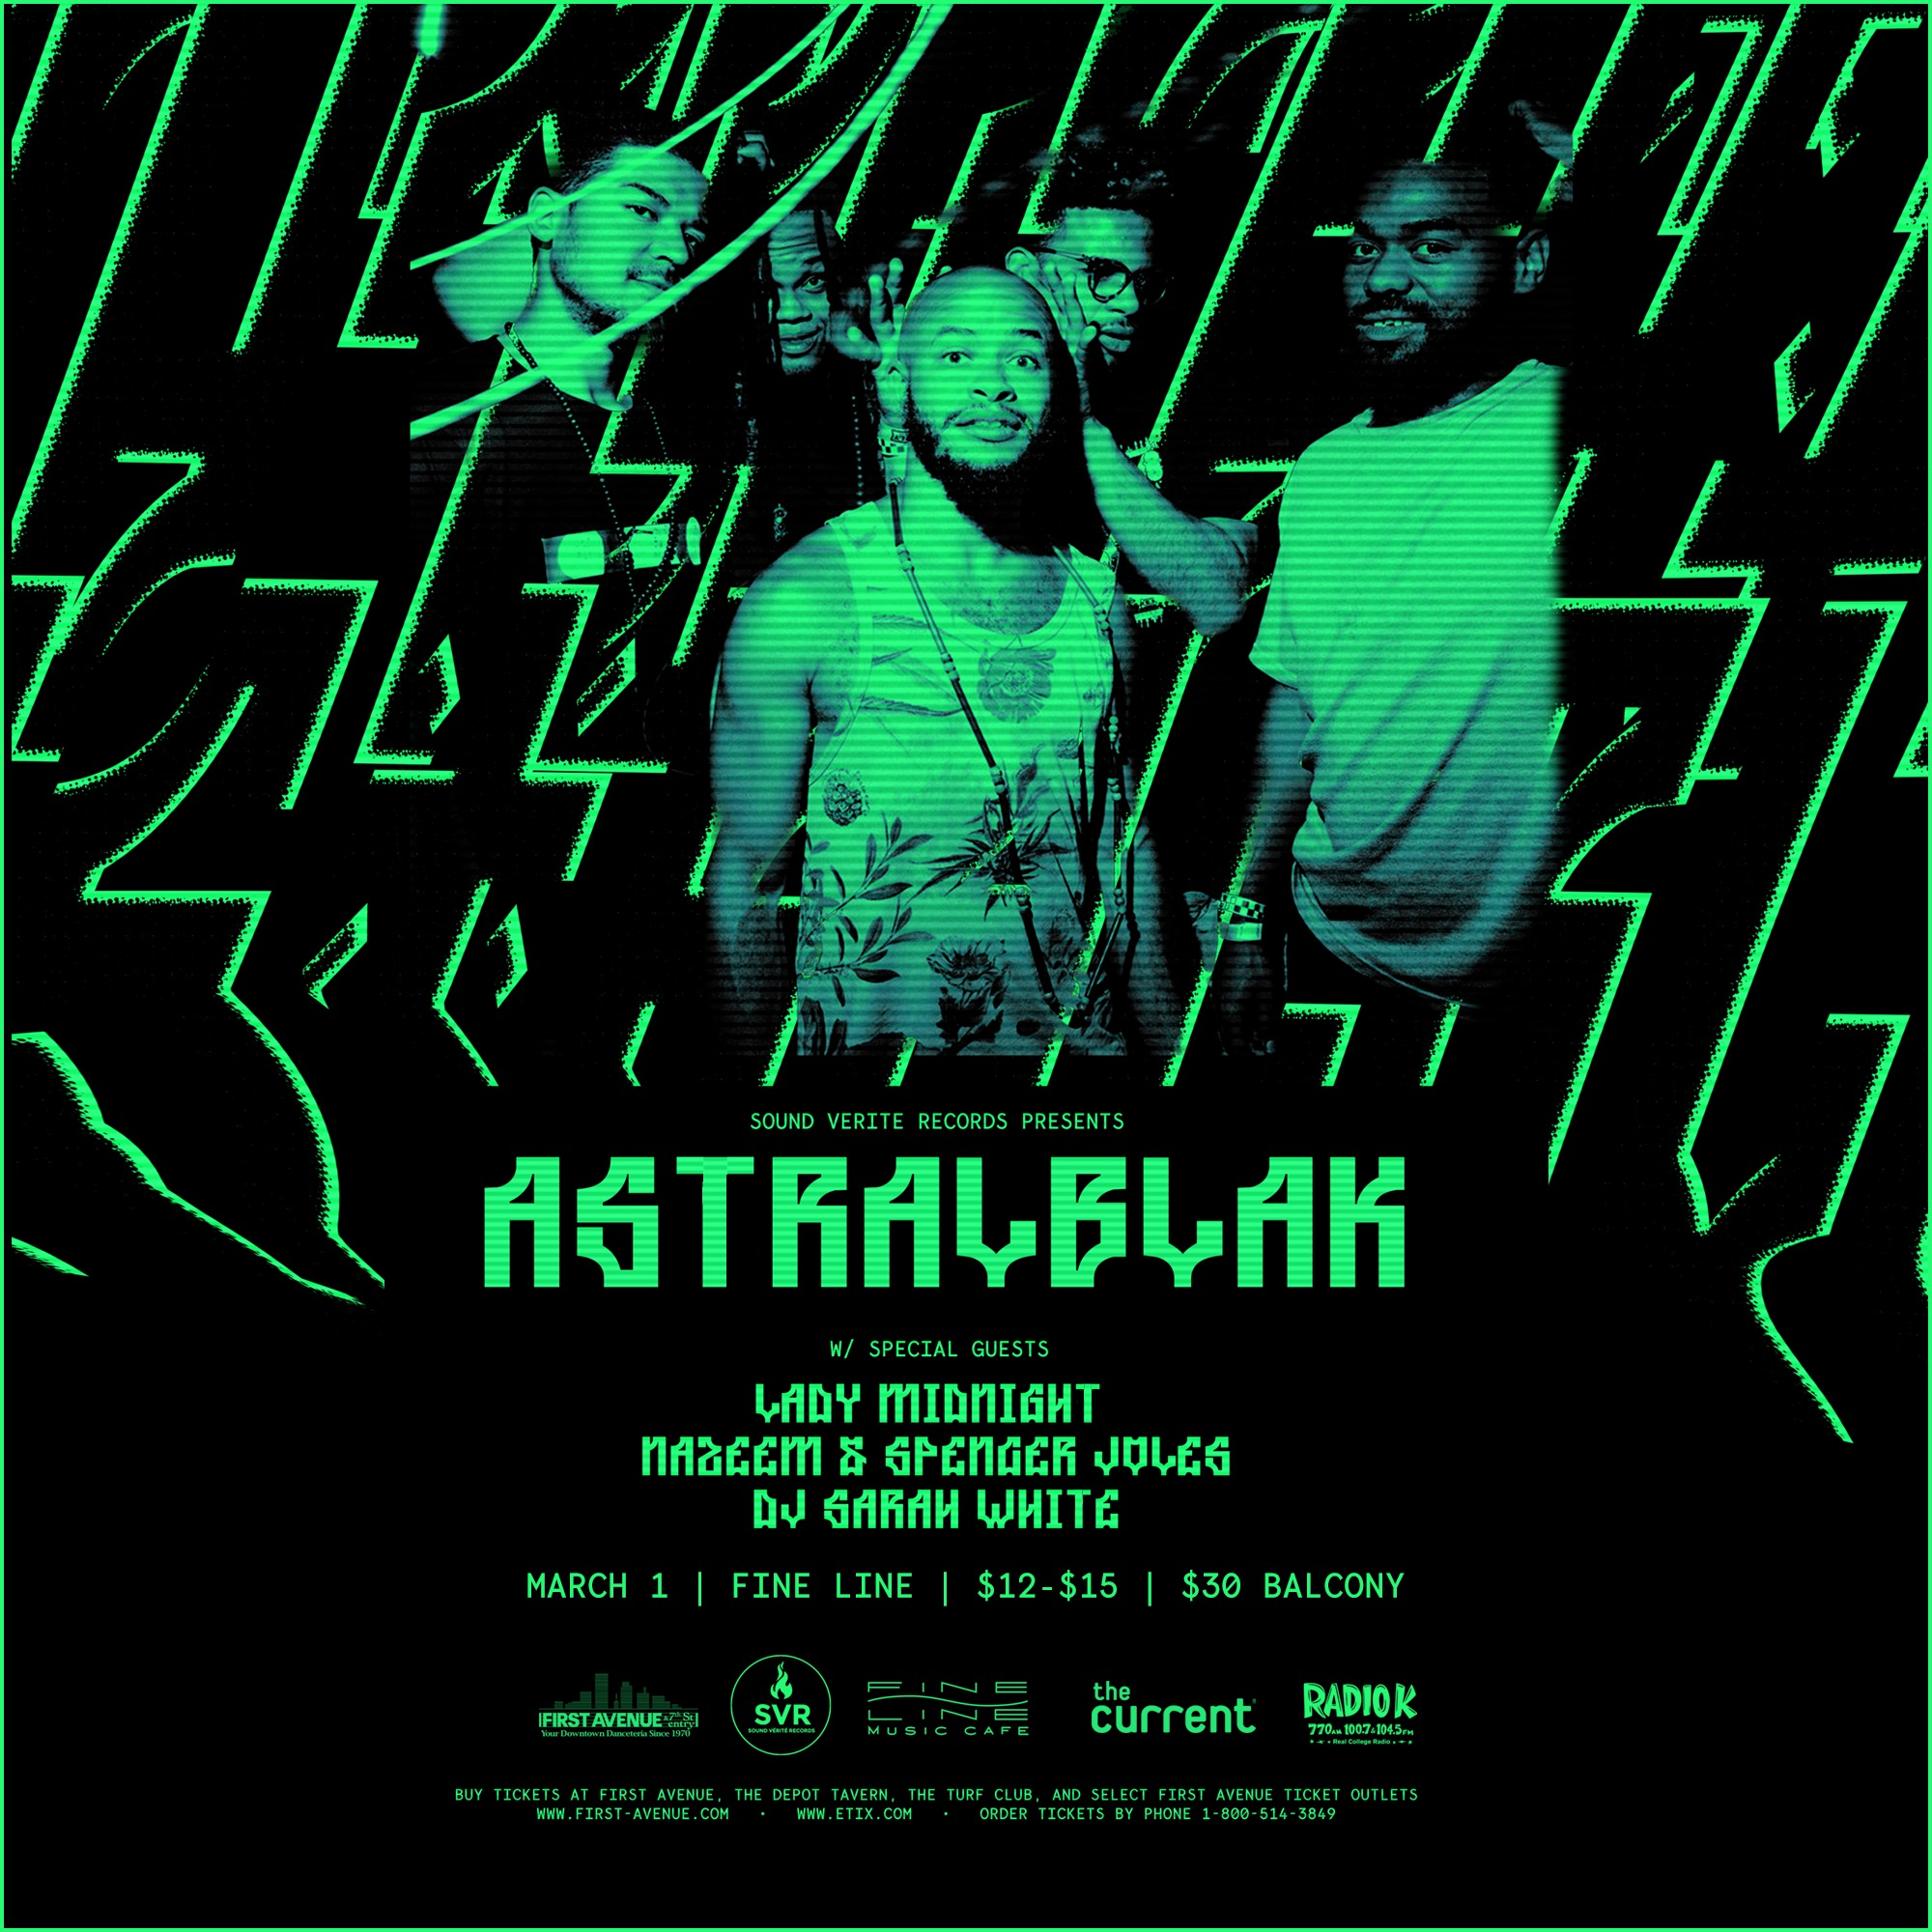 ASTRALBLAK  with LADY MIDNIGHT, NAZEEM & SPENCER JOLES, and SARAH WHITE  Friday, March 1, 2019 at 9:00pm  Add to Calendar  $12.00 advance  $15.00  day of show  18+  Presented by:   Sound Vérité Records ,  89.3 The Current  and  Radio K    https://first-avenue.com/event/2019/03/astralblak